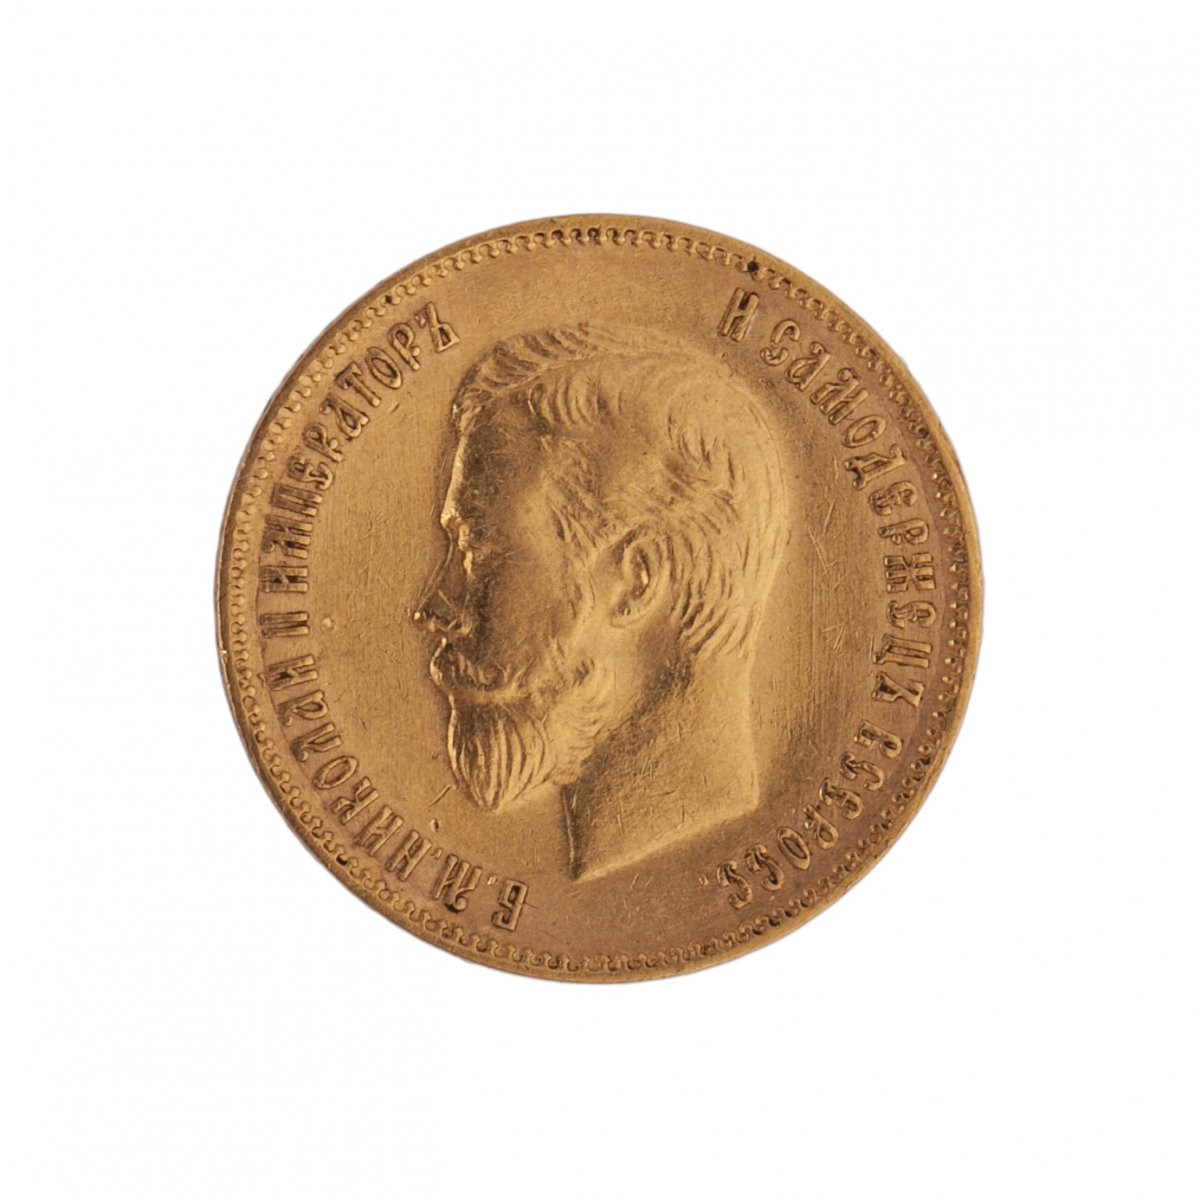 Gold 10 Rubles Coin Of Nikolai II Portrait Russia 1902